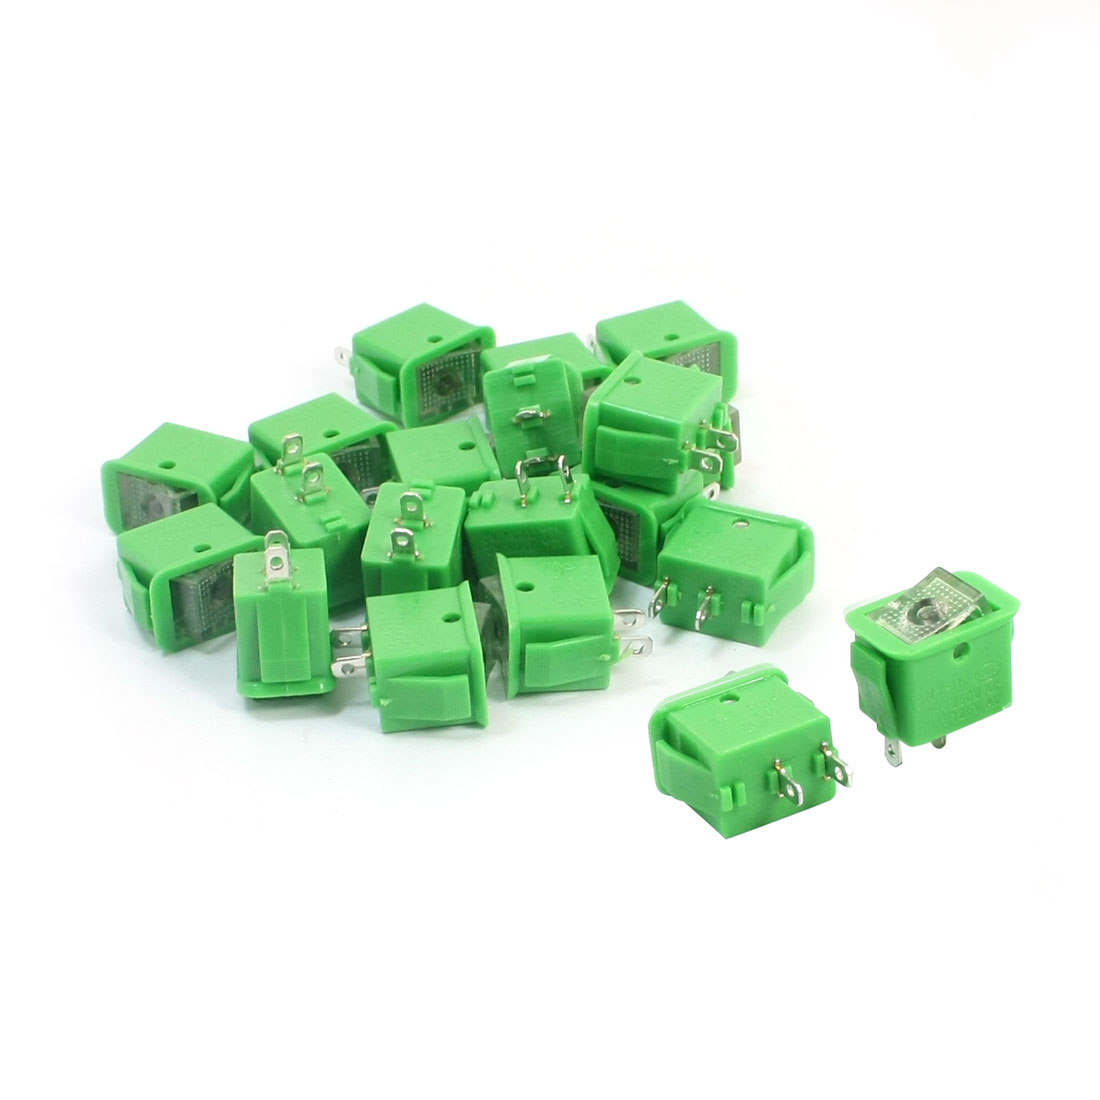 20pcs Green Latching SPST 2 Positions Rocker Switch AC250V/10A 125V/13A